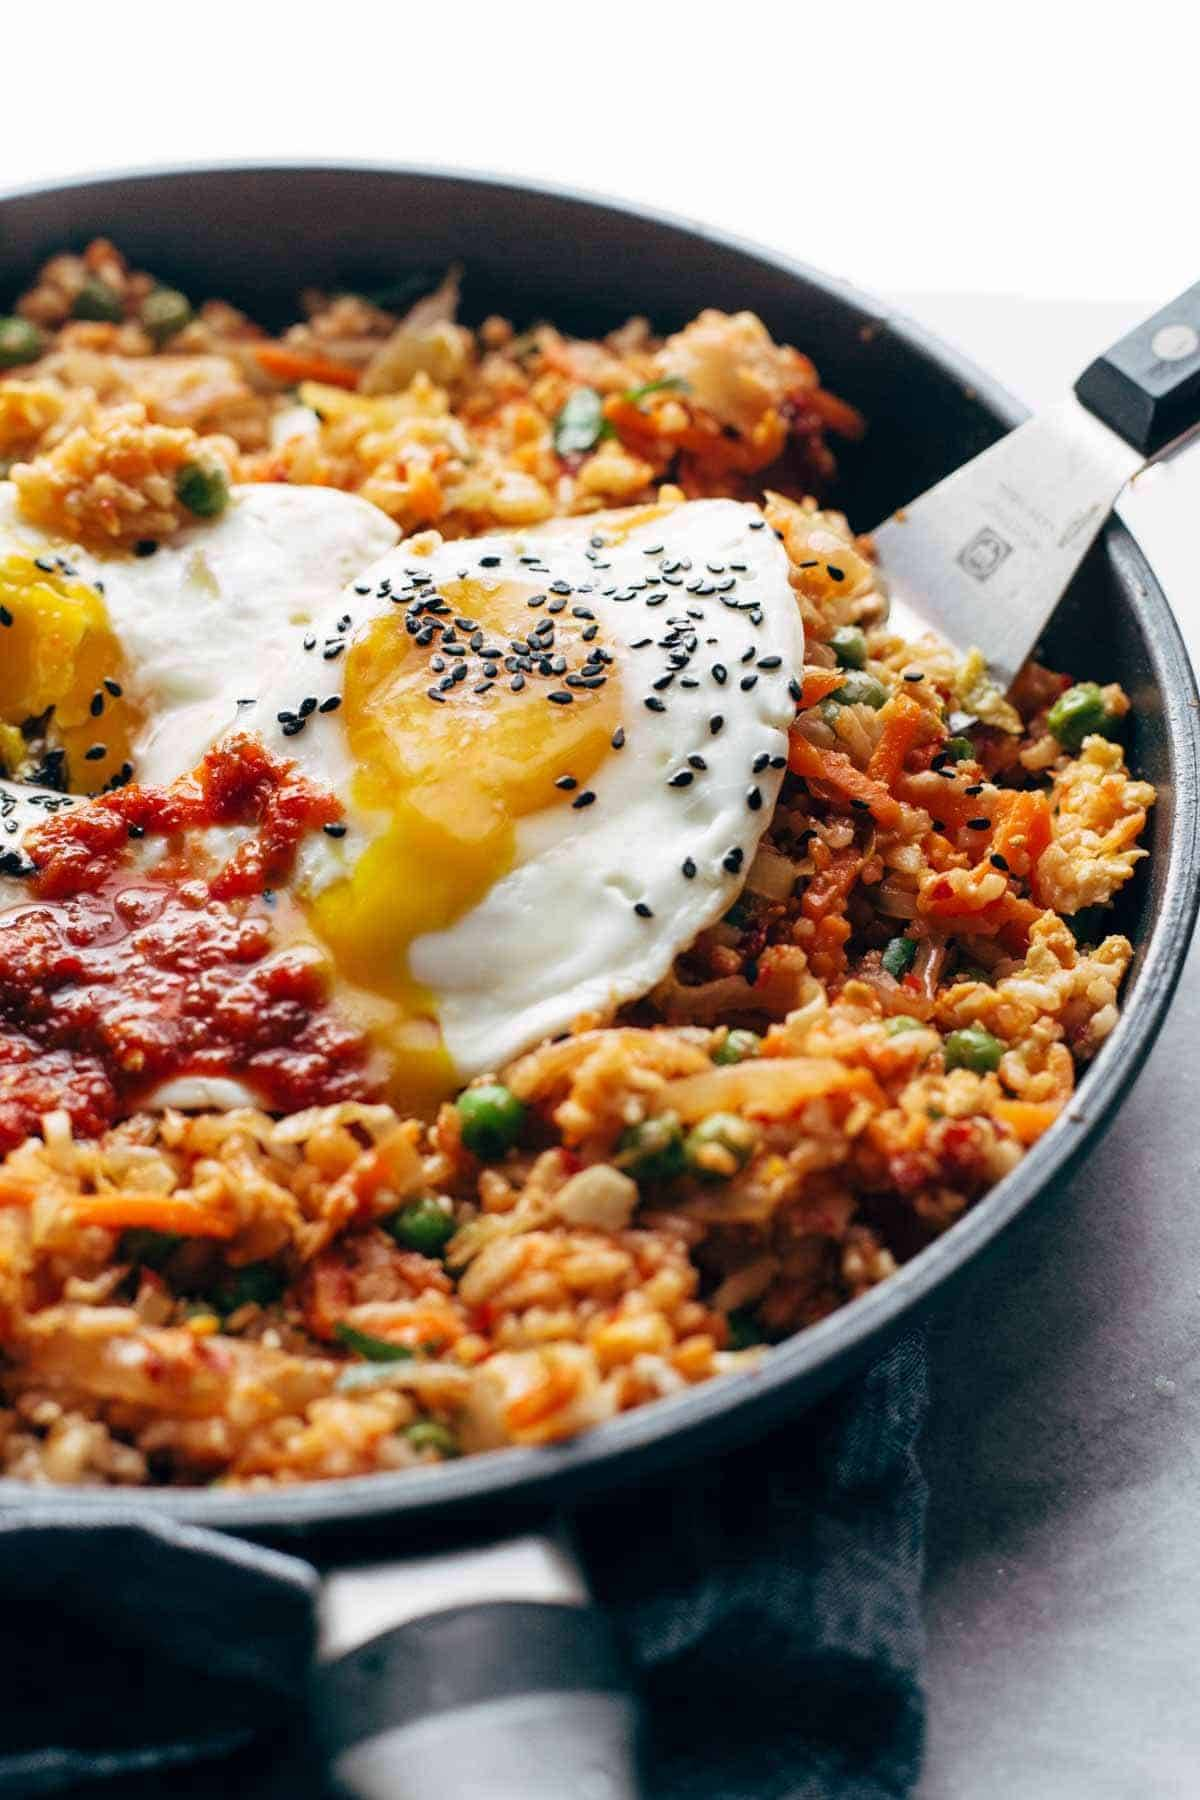 Kimchi fried rice in pan with egg.